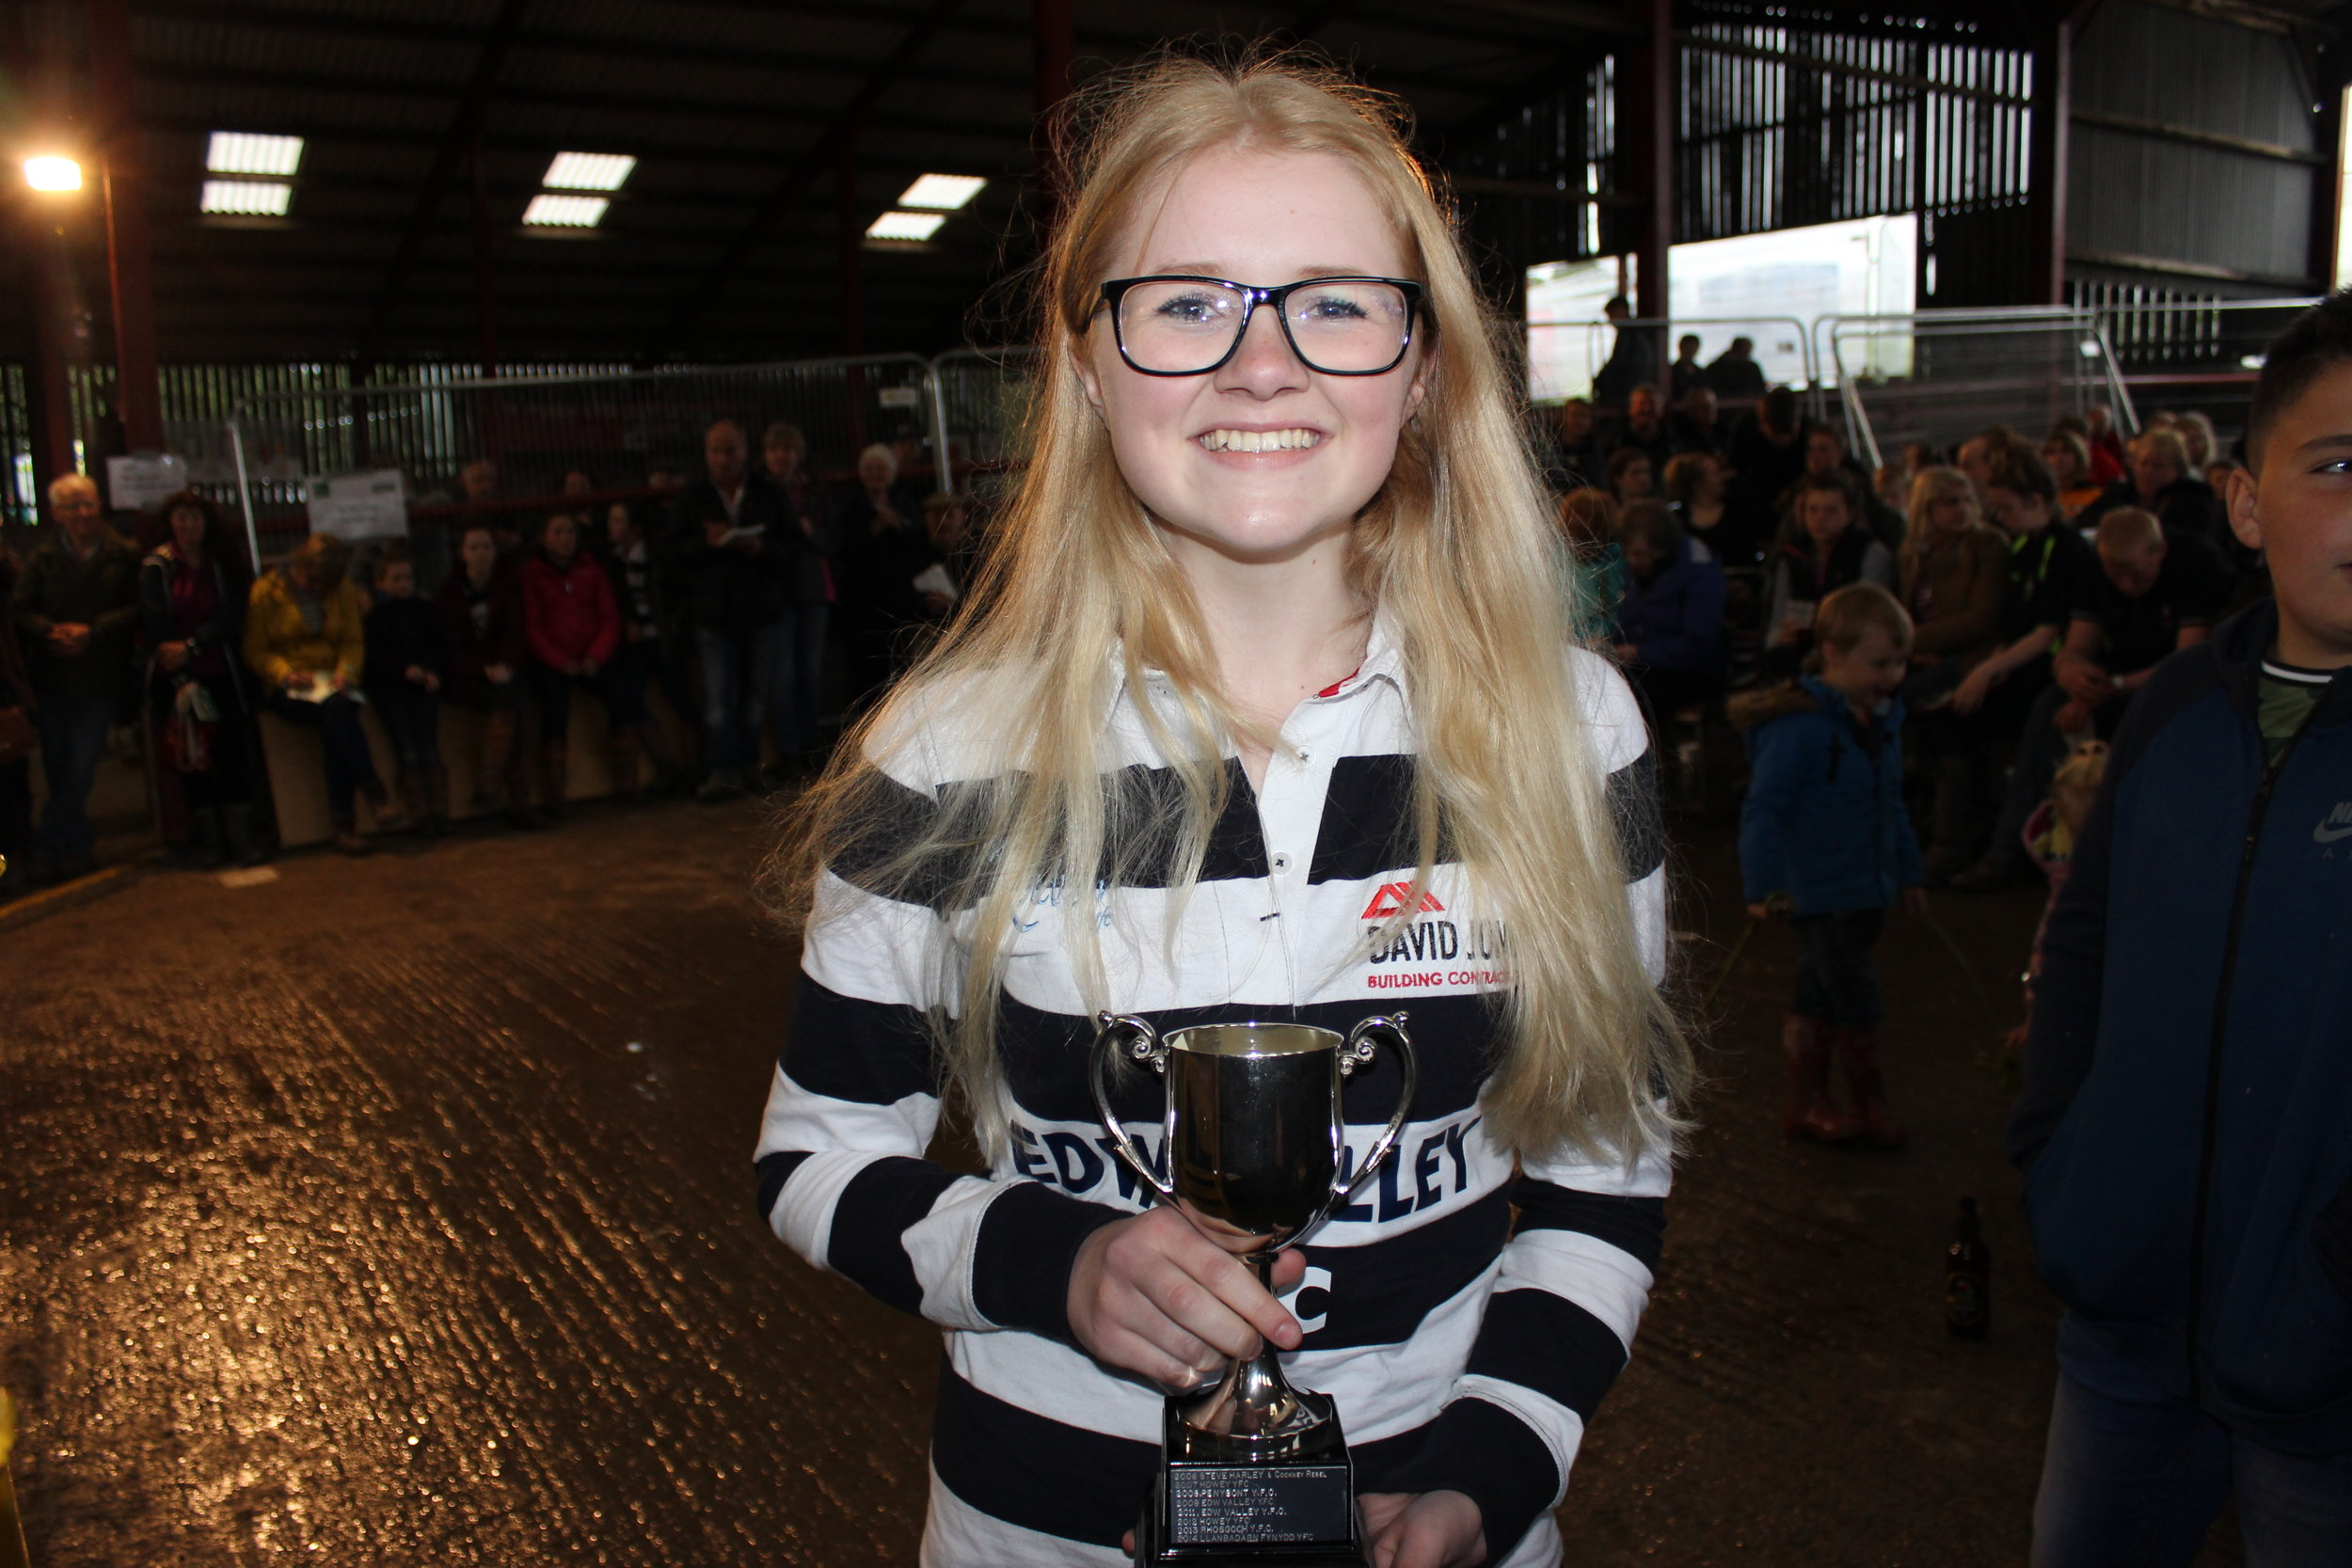 Eli Hulin Taylor, Edw Valley YFC - Red Flame Productions Cup (Group Top of the Pops)